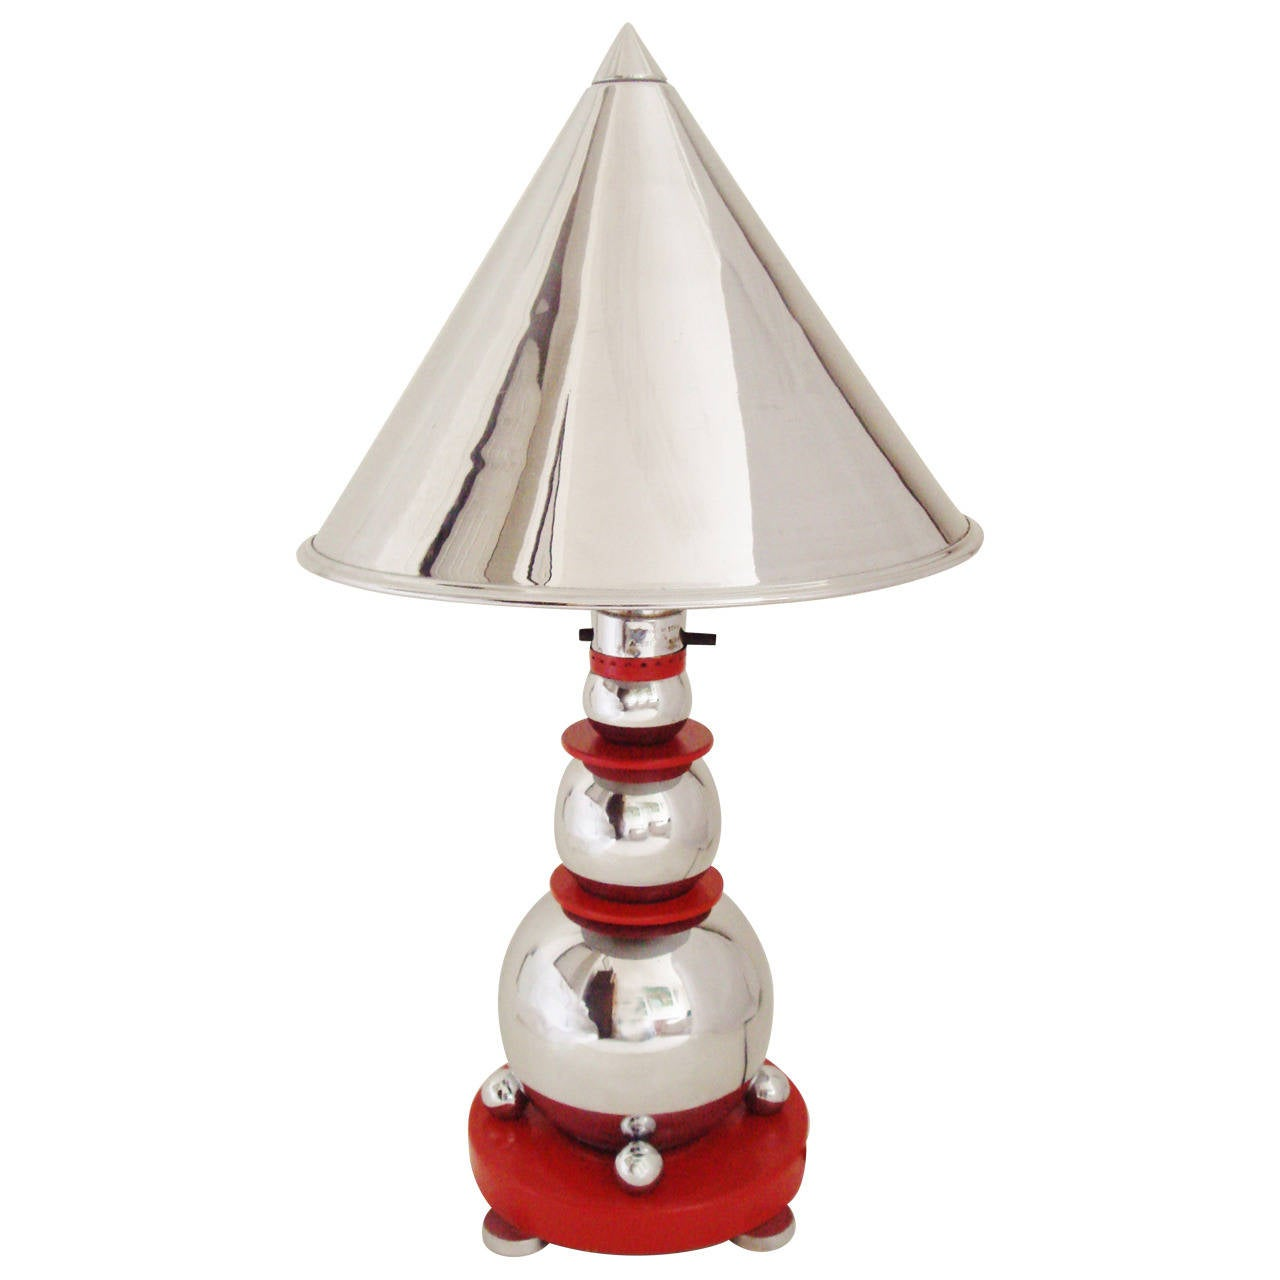 Rare Art Deco Chrome and Red Enamel Cone and Sphere Table Lamp by Electrolier 1